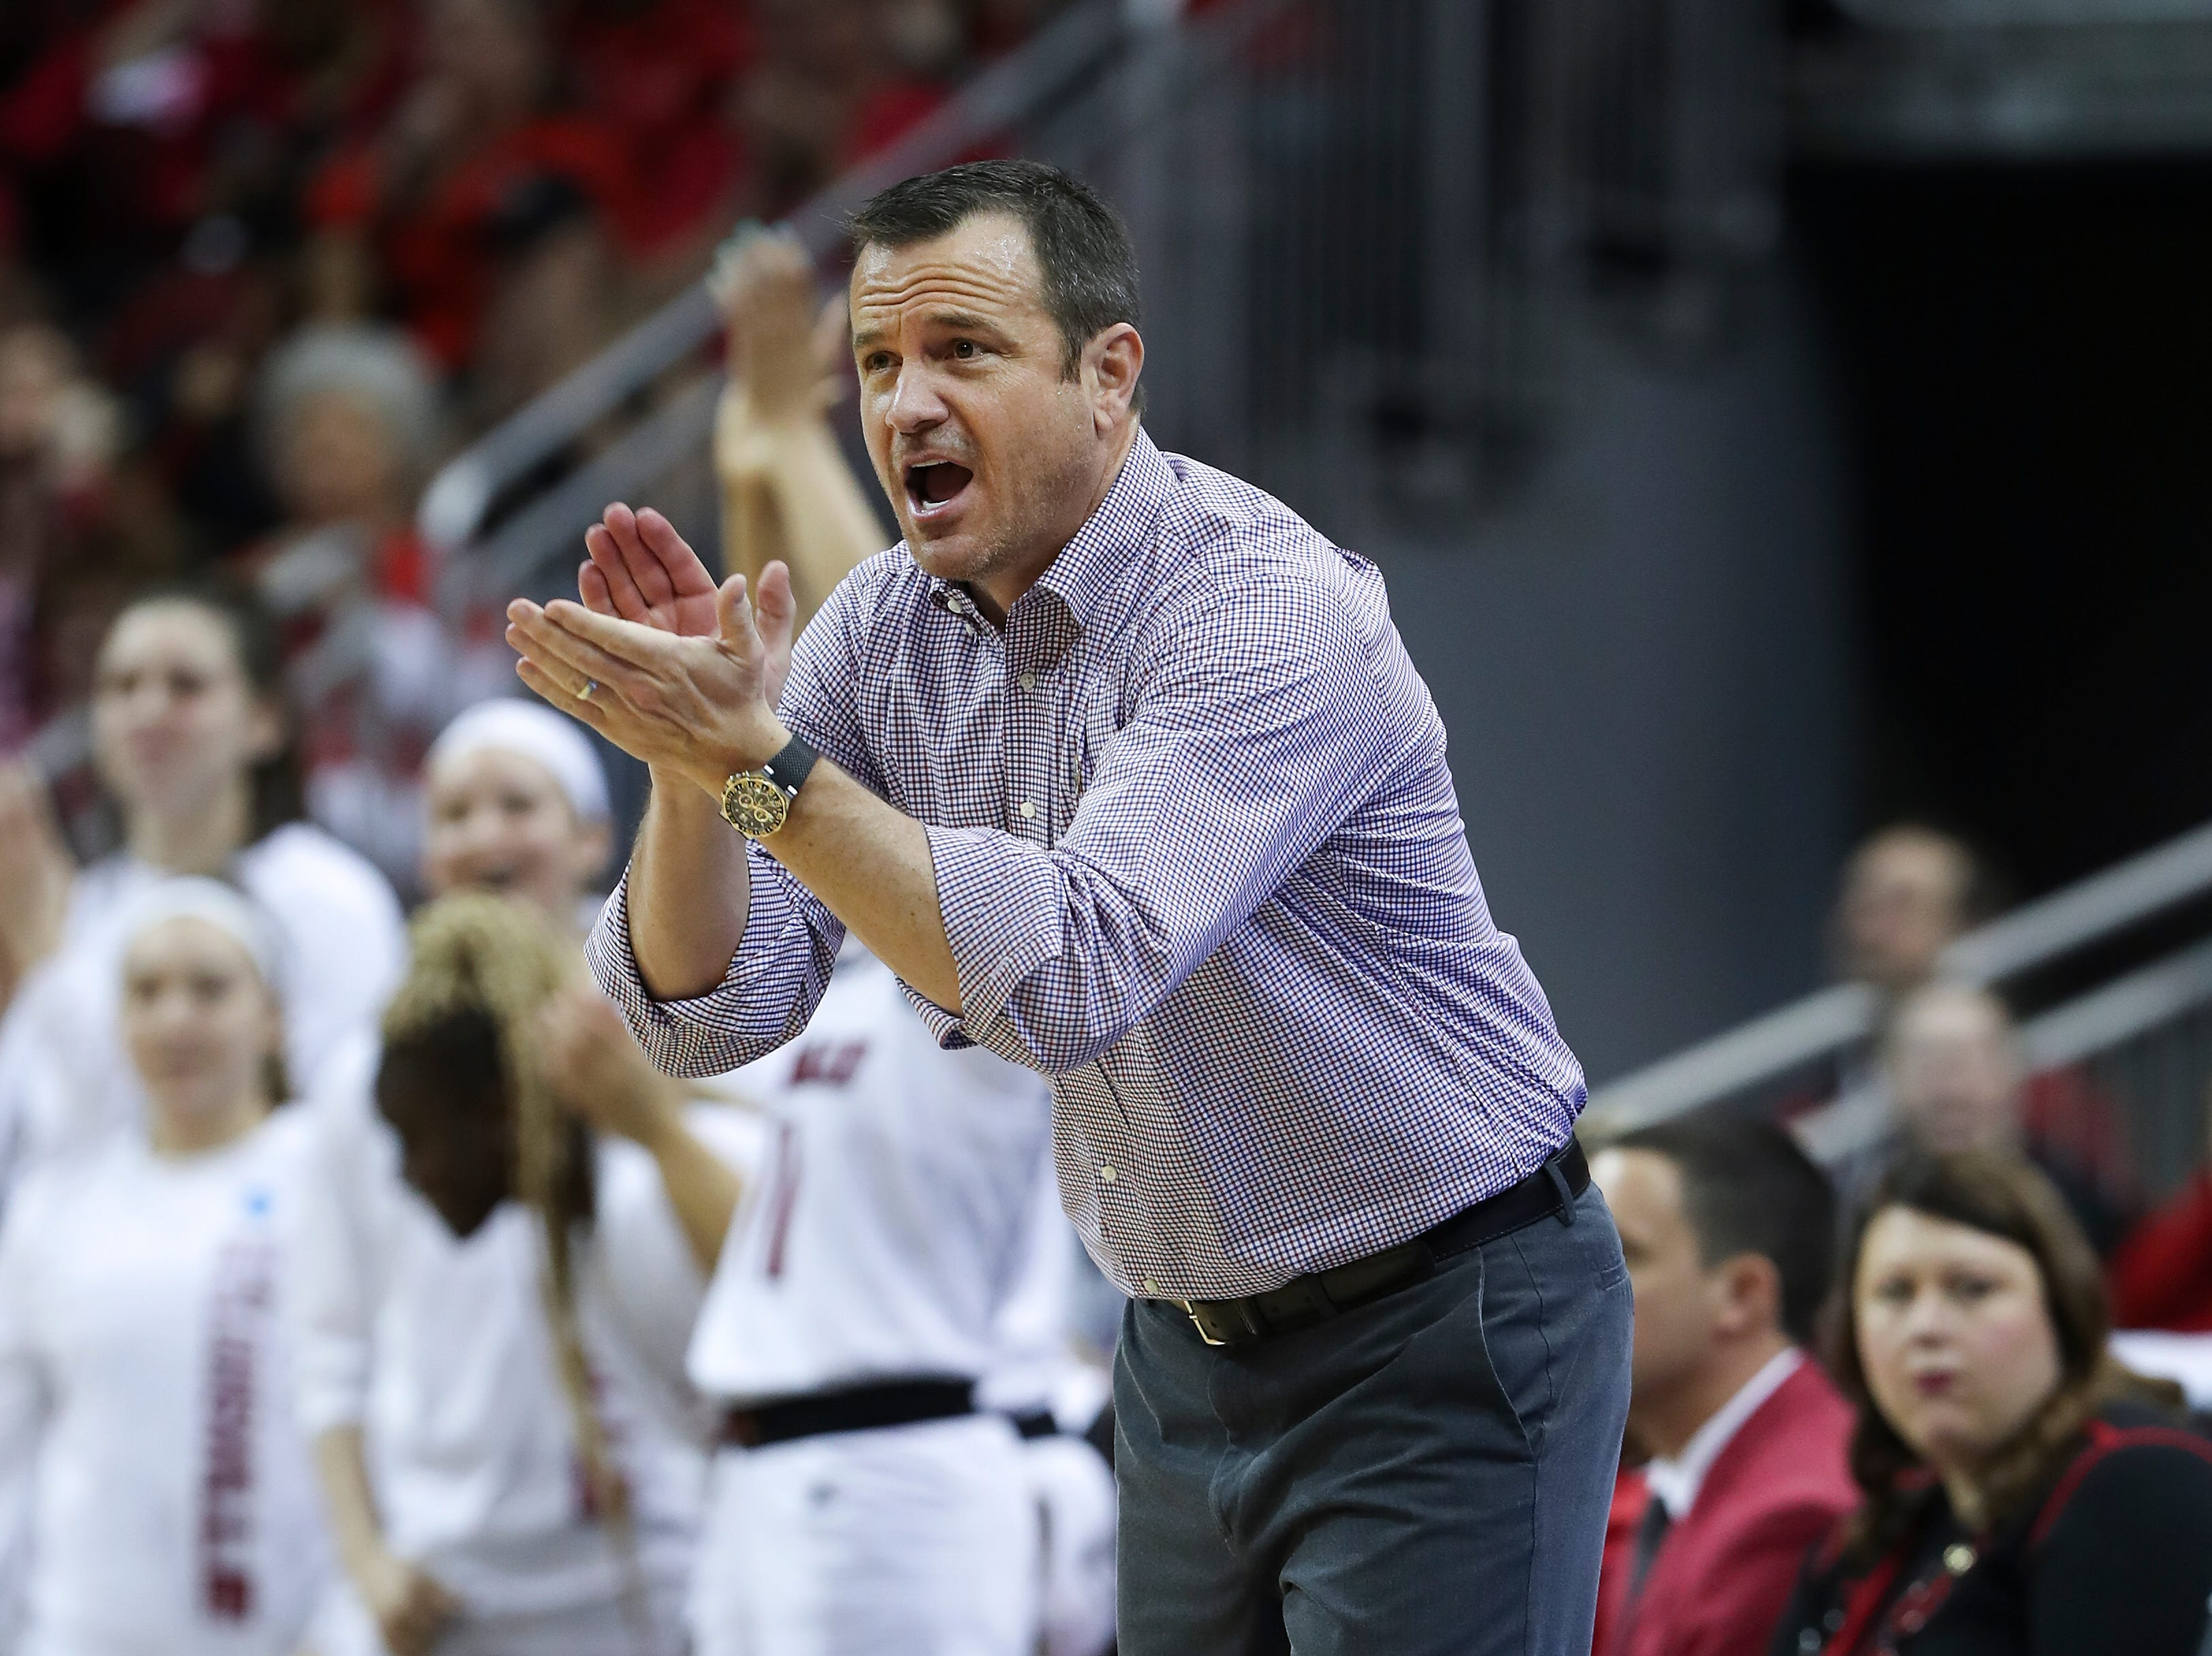 U of L head coach Jeff Walz applauded his team against Michigan in the second round of their NCAA Tournament game at the Yum Center.  Mar. 24, 2019